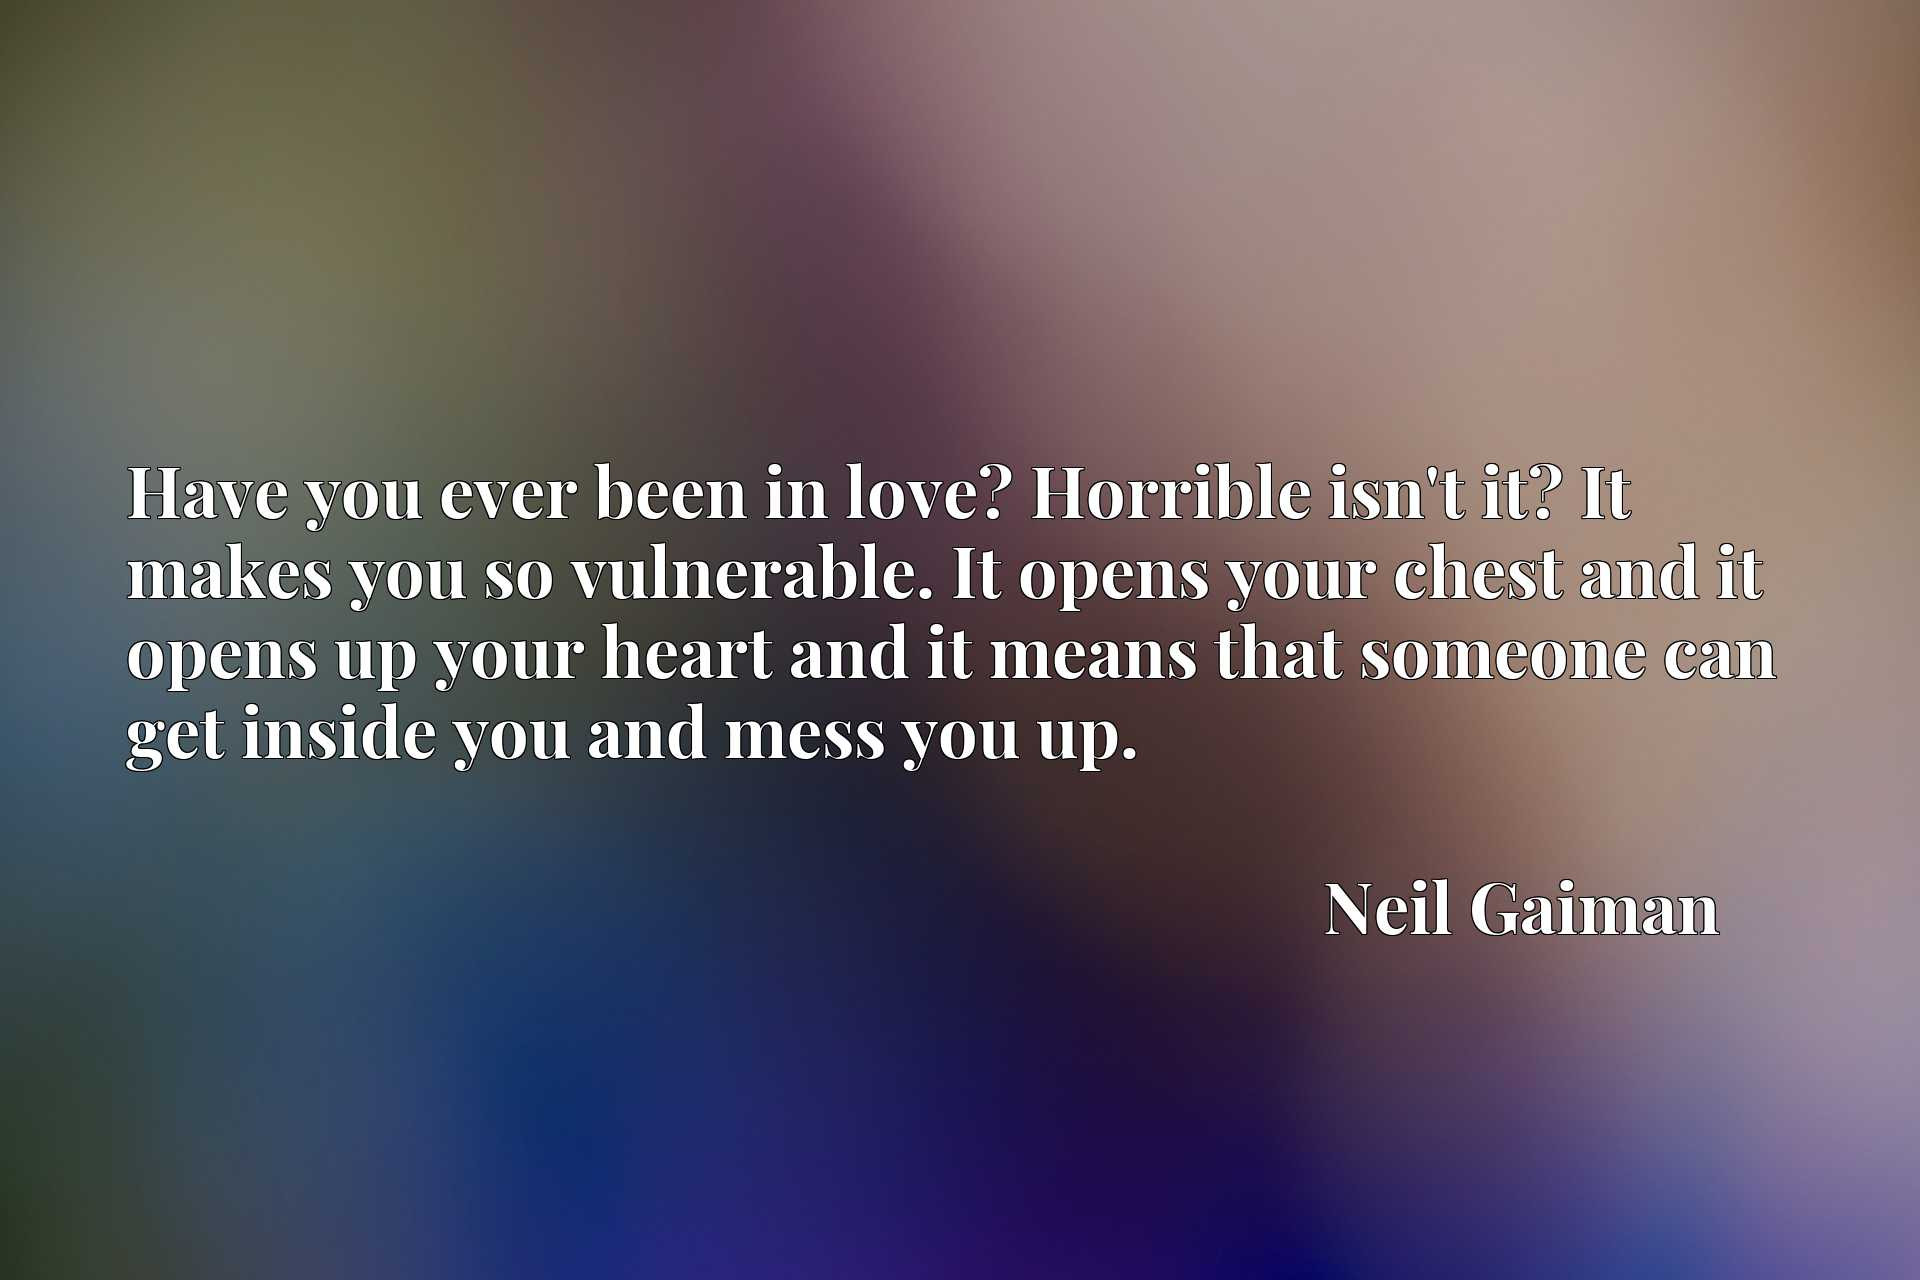 Have you ever been in love? Horrible isn't it? It makes you so vulnerable. It opens your chest and it opens up your heart and it means that someone can get inside you and mess you up.